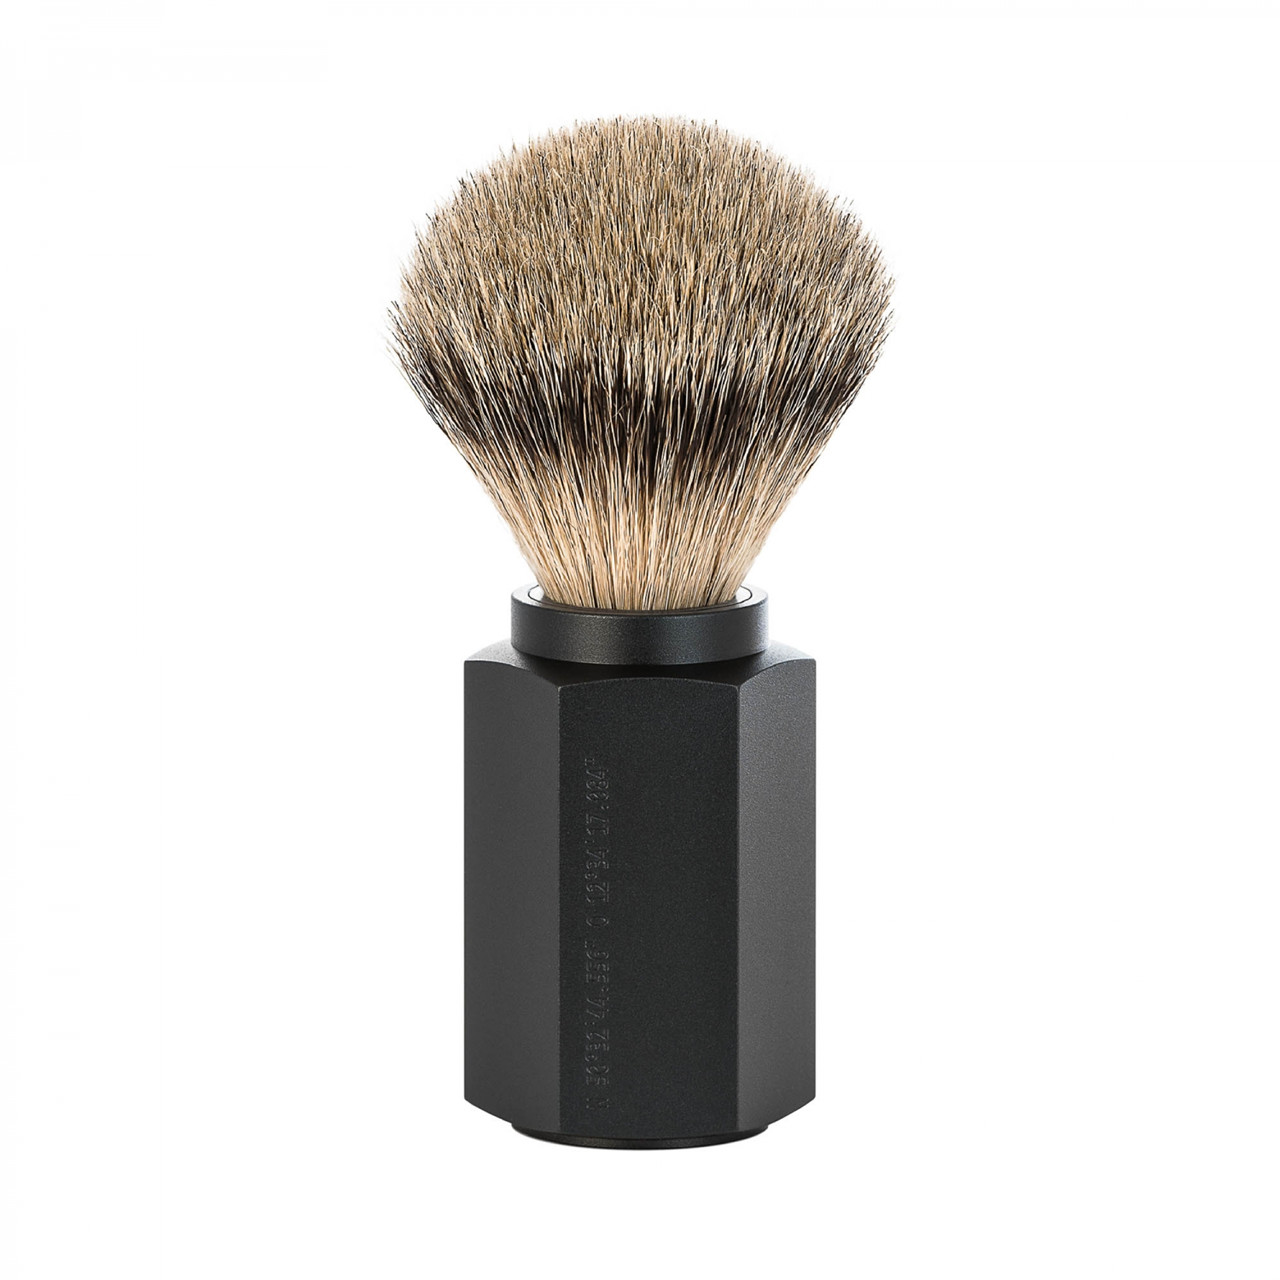 Image of   Mühle x Mark Braun Silvertip Badger Barberkost, 21 mm, Hexagon, Aluminium Graphite